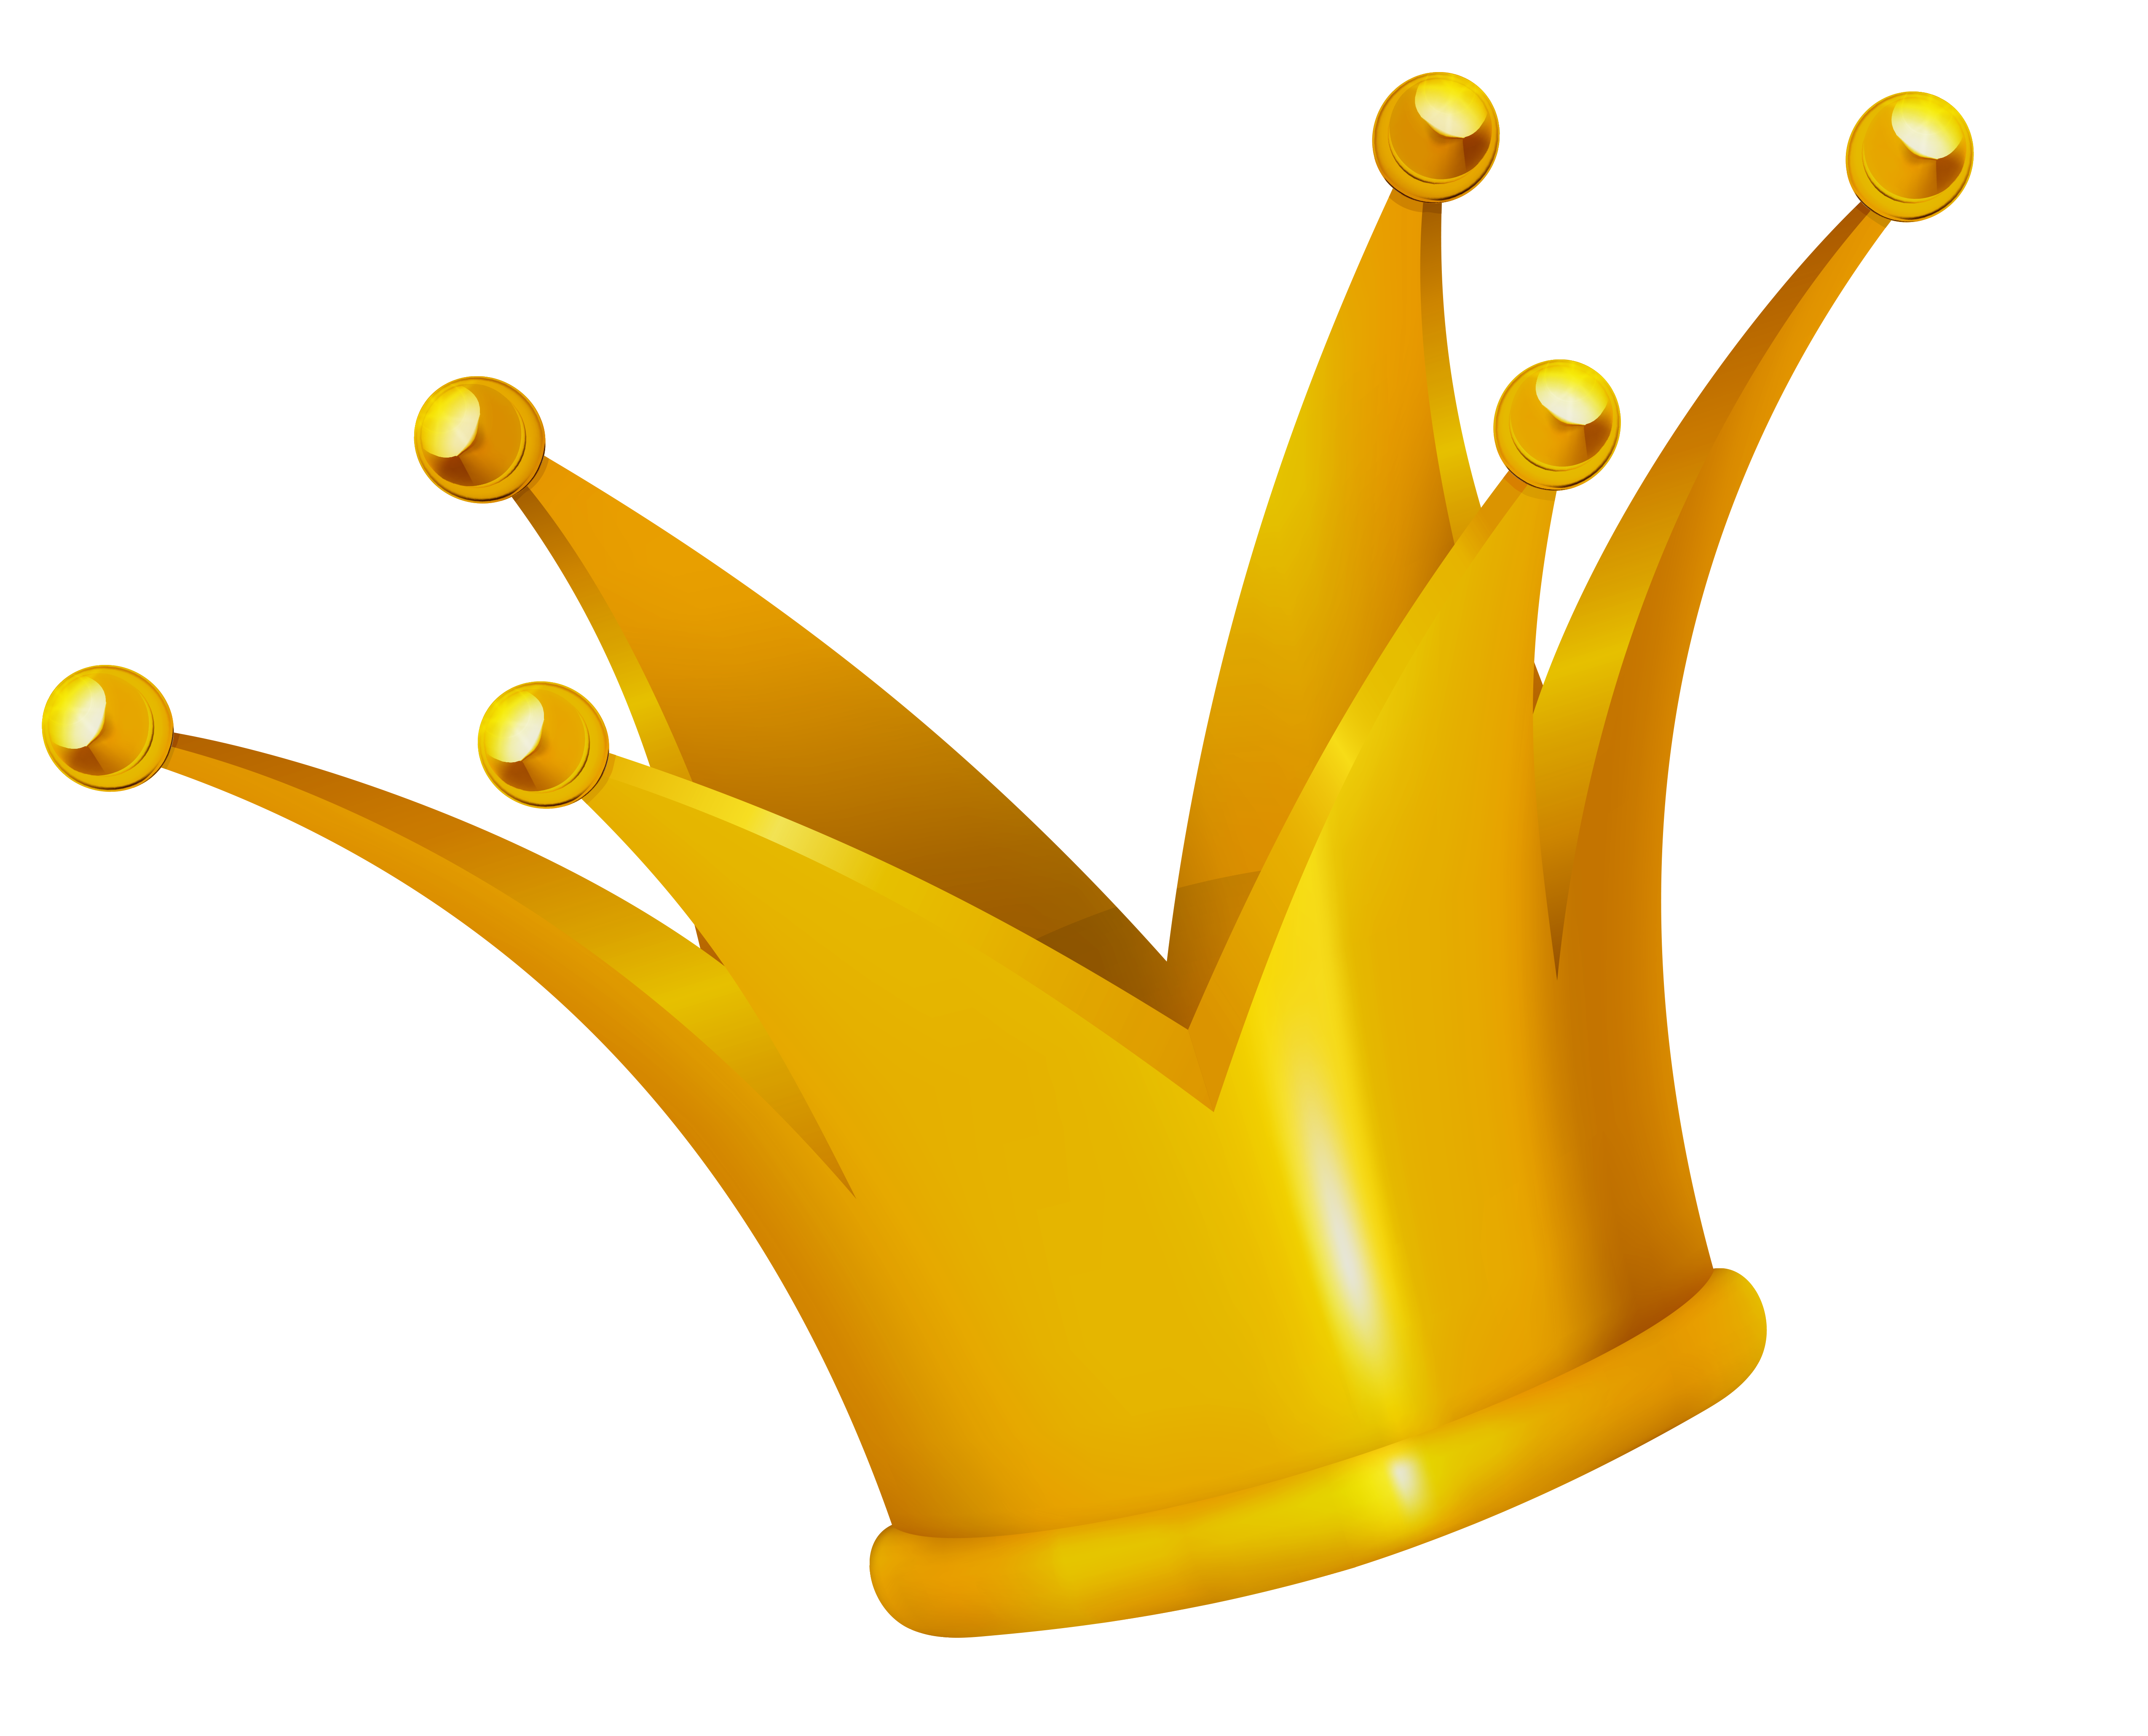 5098x4120 King Crown Clipart